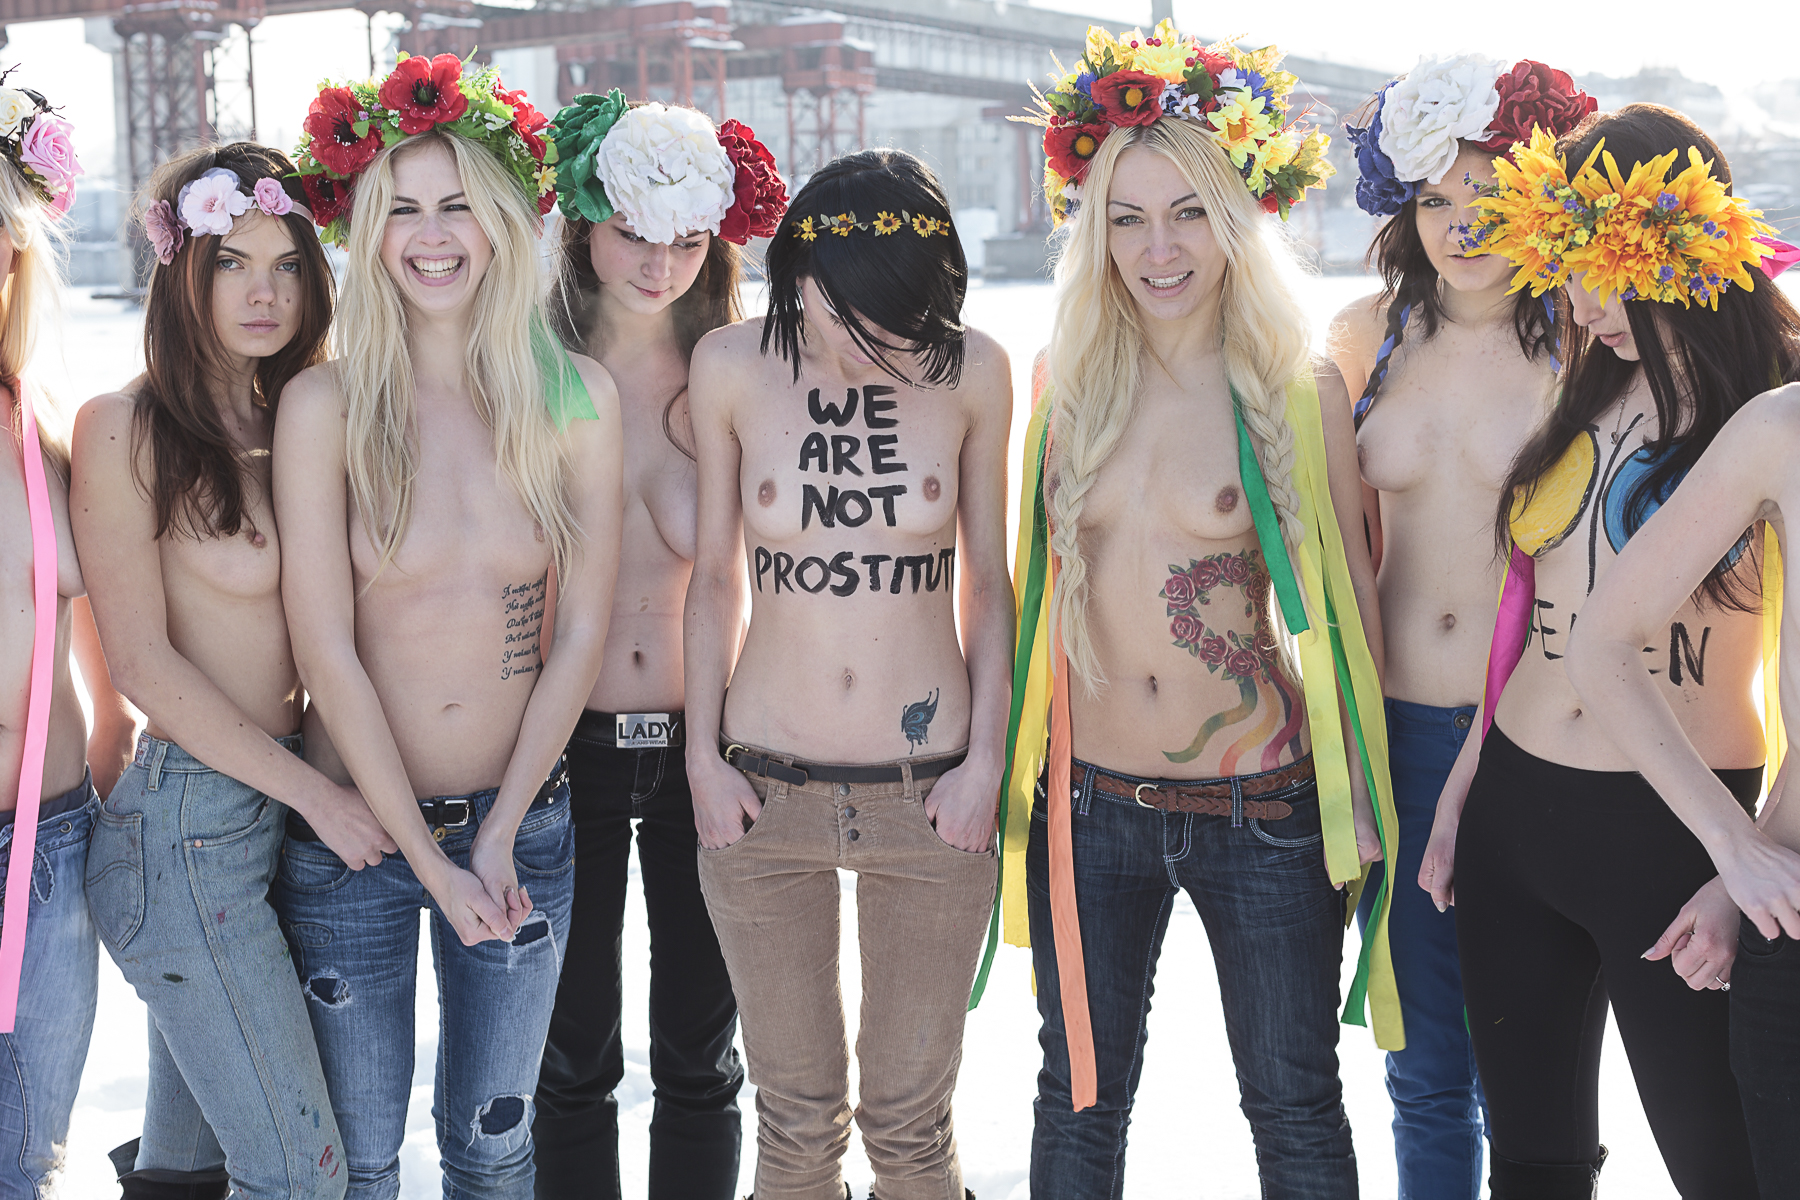 Kiev, février 2012. Membres des FEMEN à Kiev sur le Dniepr.Kiev, February 2012. Members of the feminist group FEMEN on the Dniepr in Kiev.